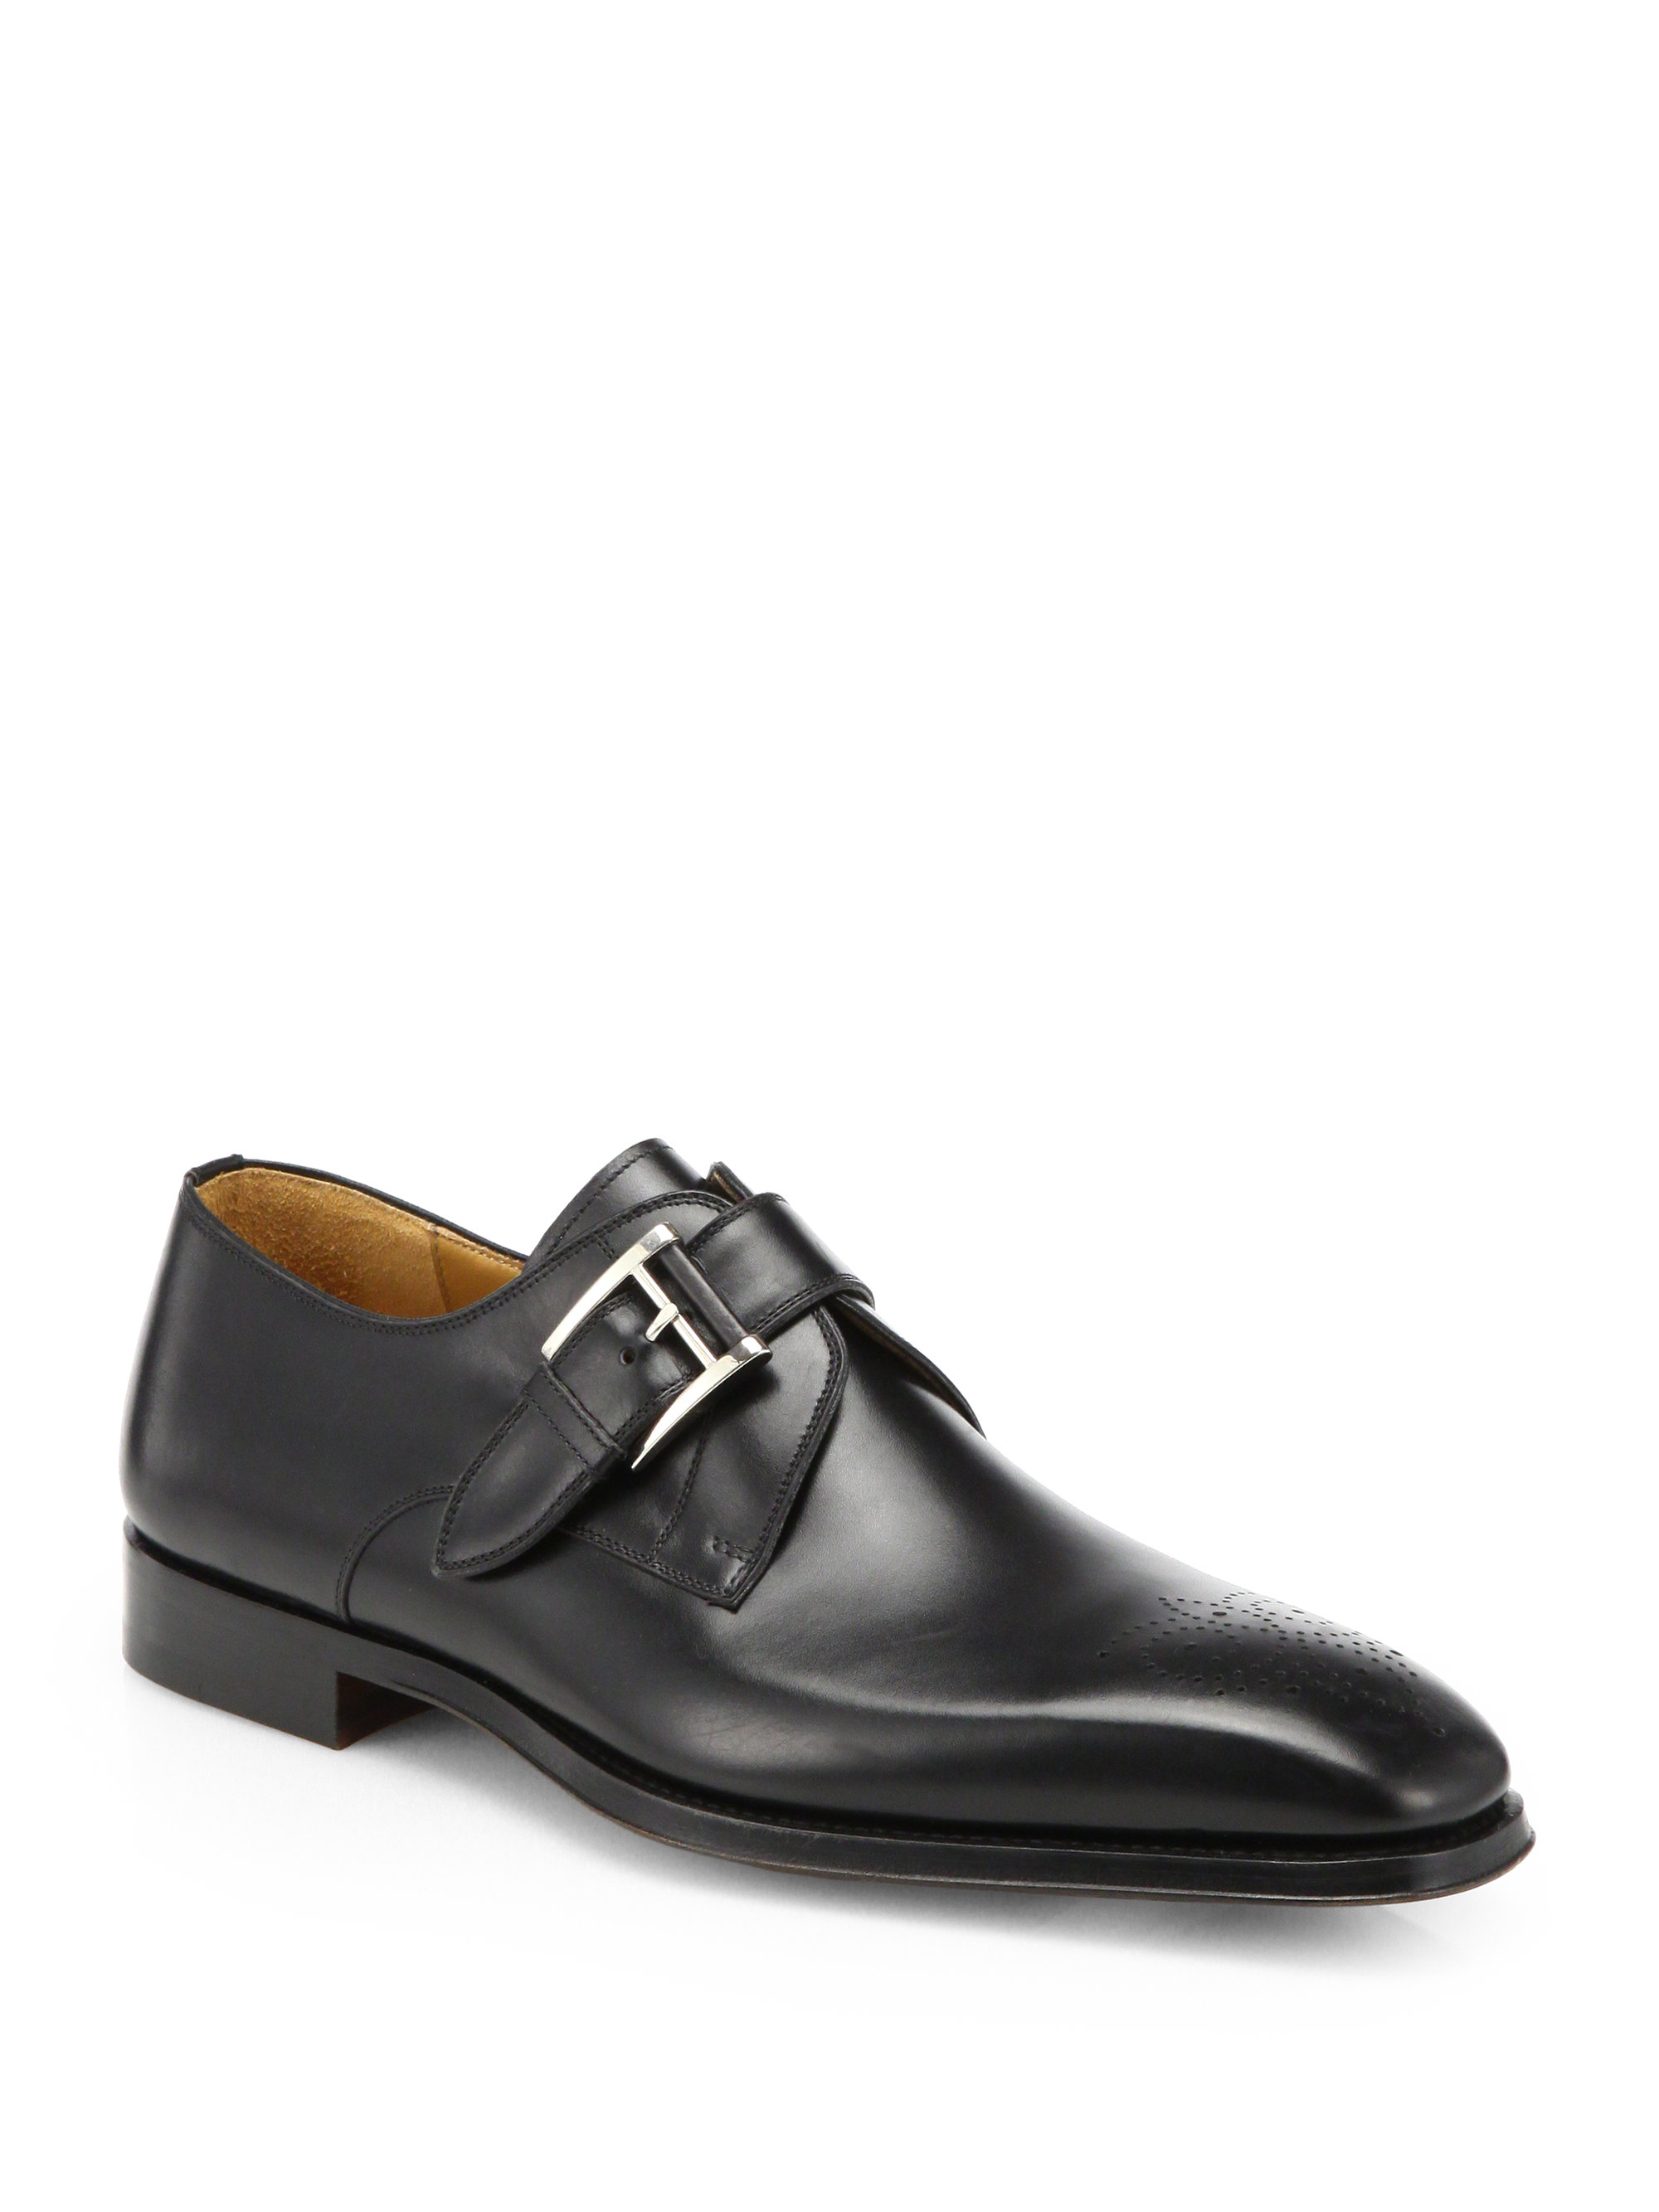 saks fifth avenue saks fifth avenue by magnanni leather